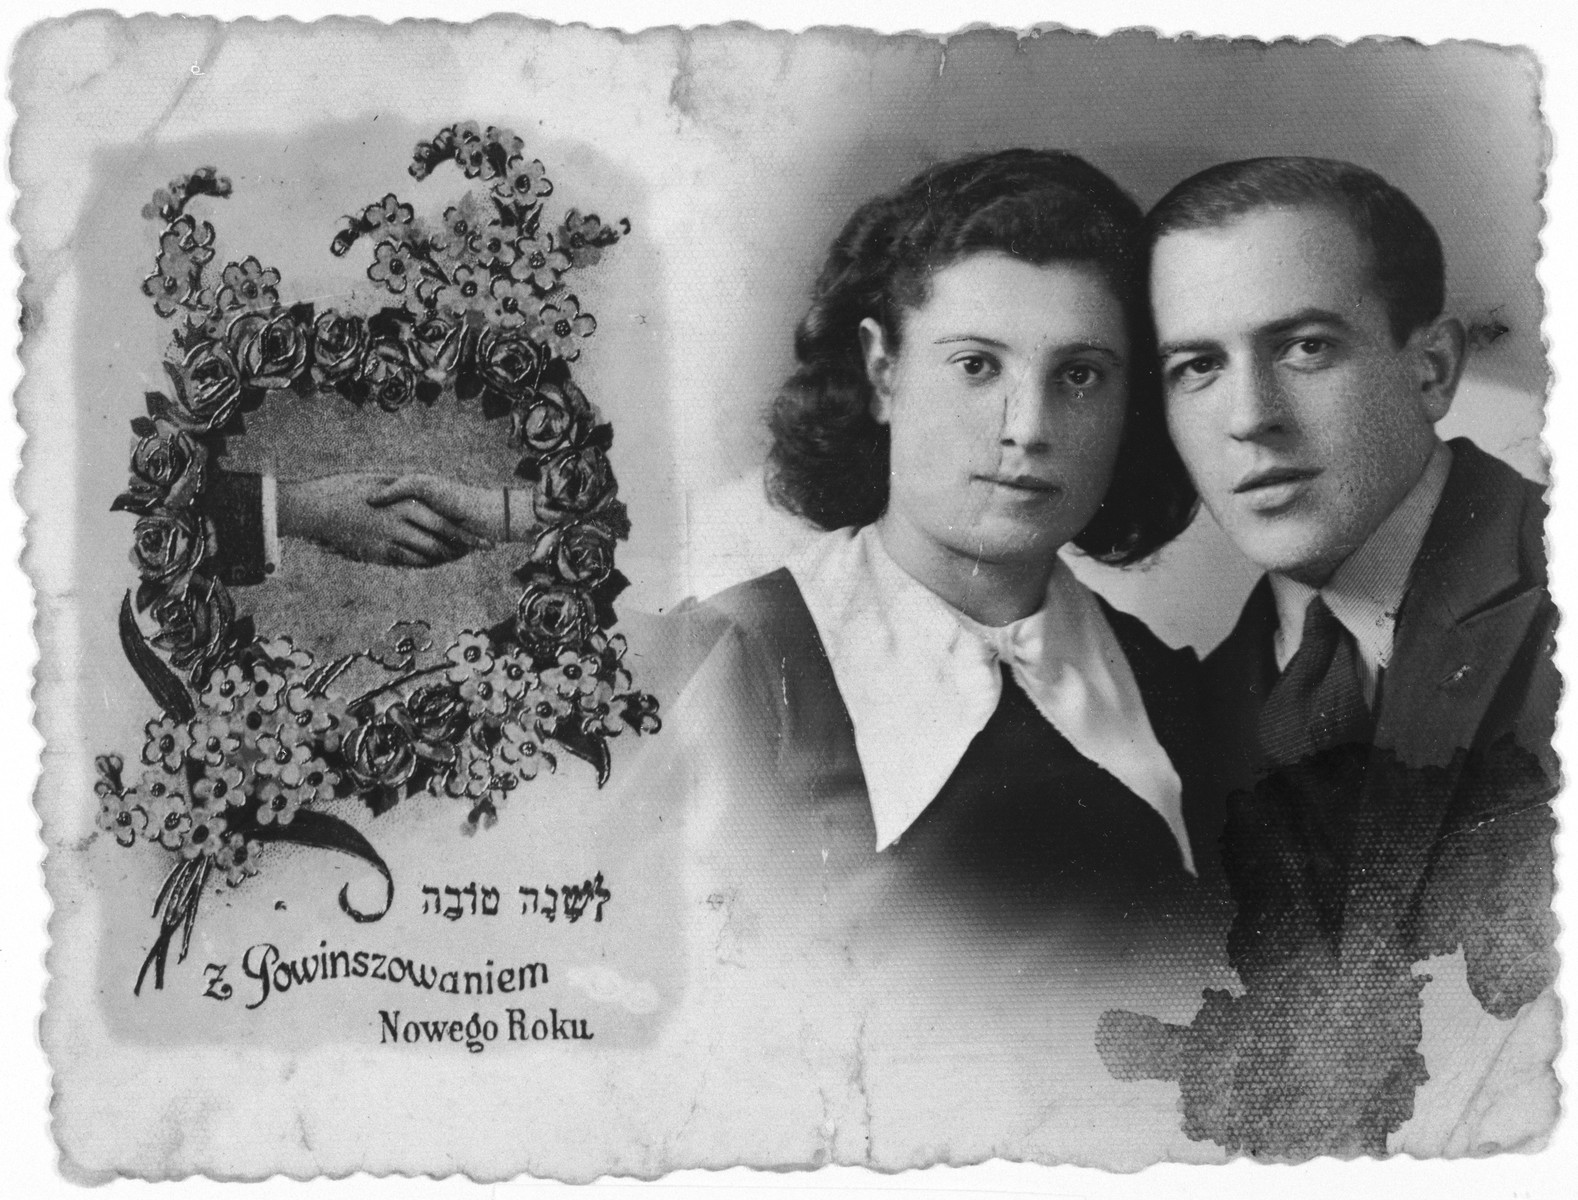 Jewish New Year card sent by Gershon and Masha Hirszfeld to their relatives in Palestine.